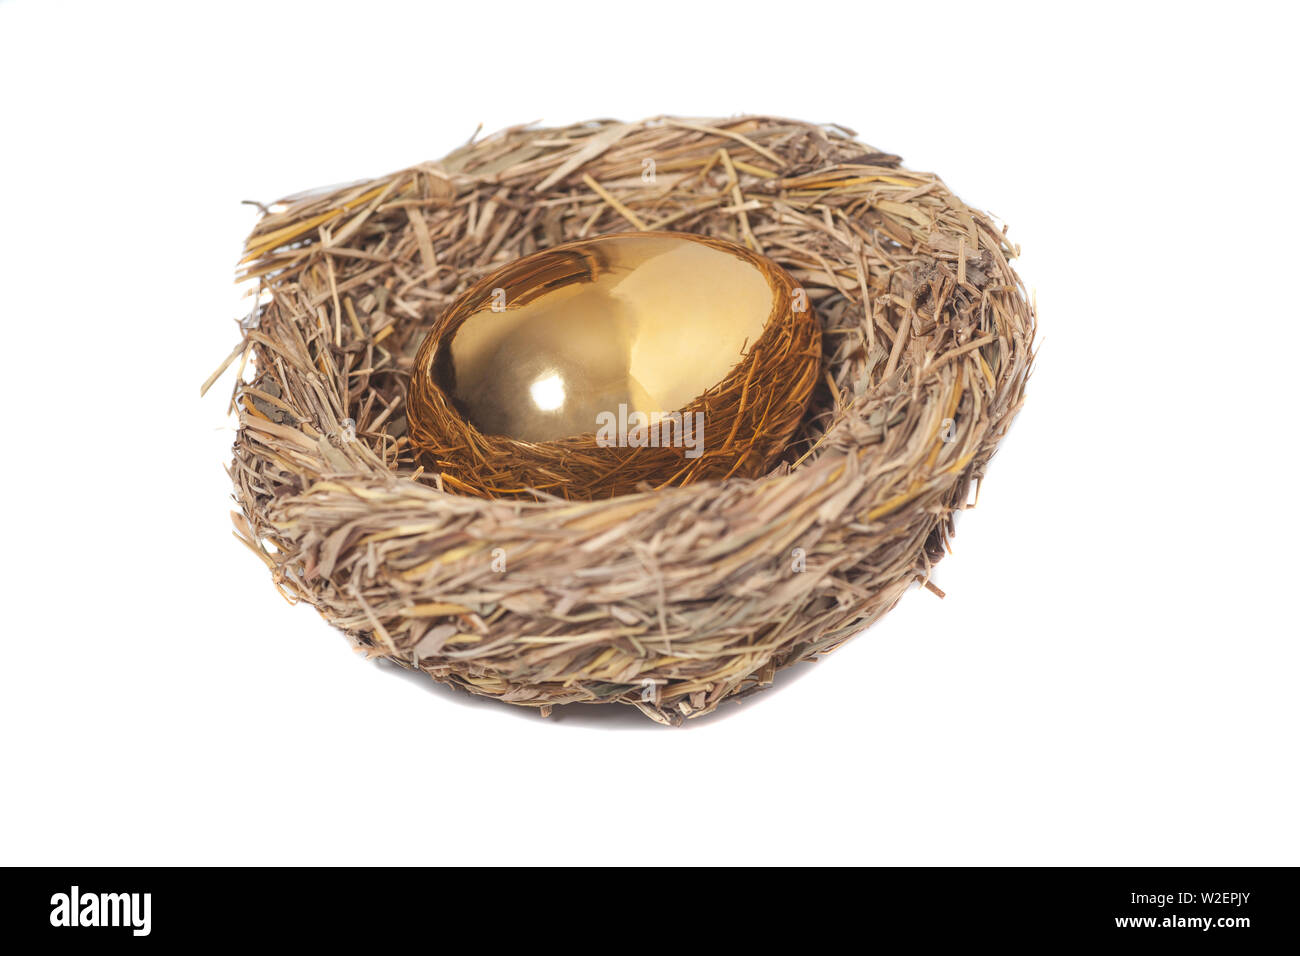 Golden egg in bird nest on white - Stock Image